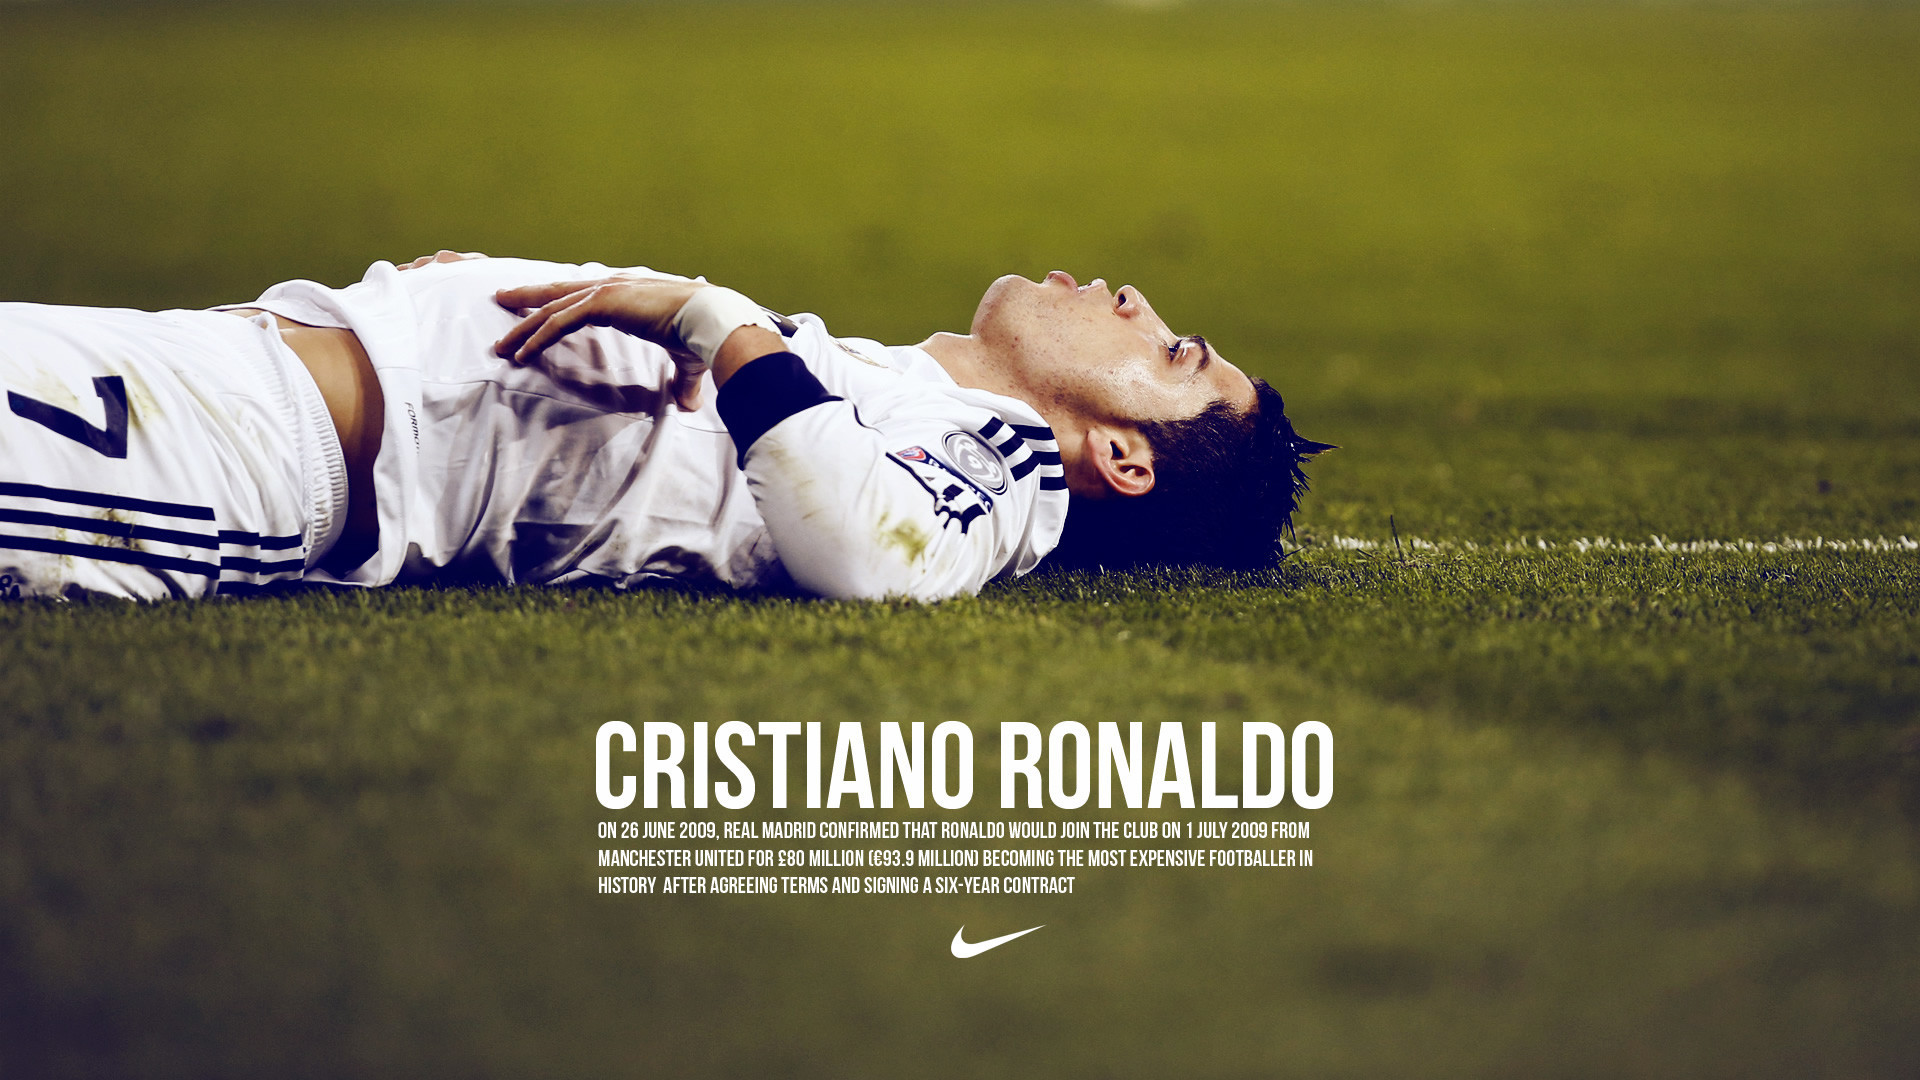 cristiano ronaldo wallpaper hd 1080x1920